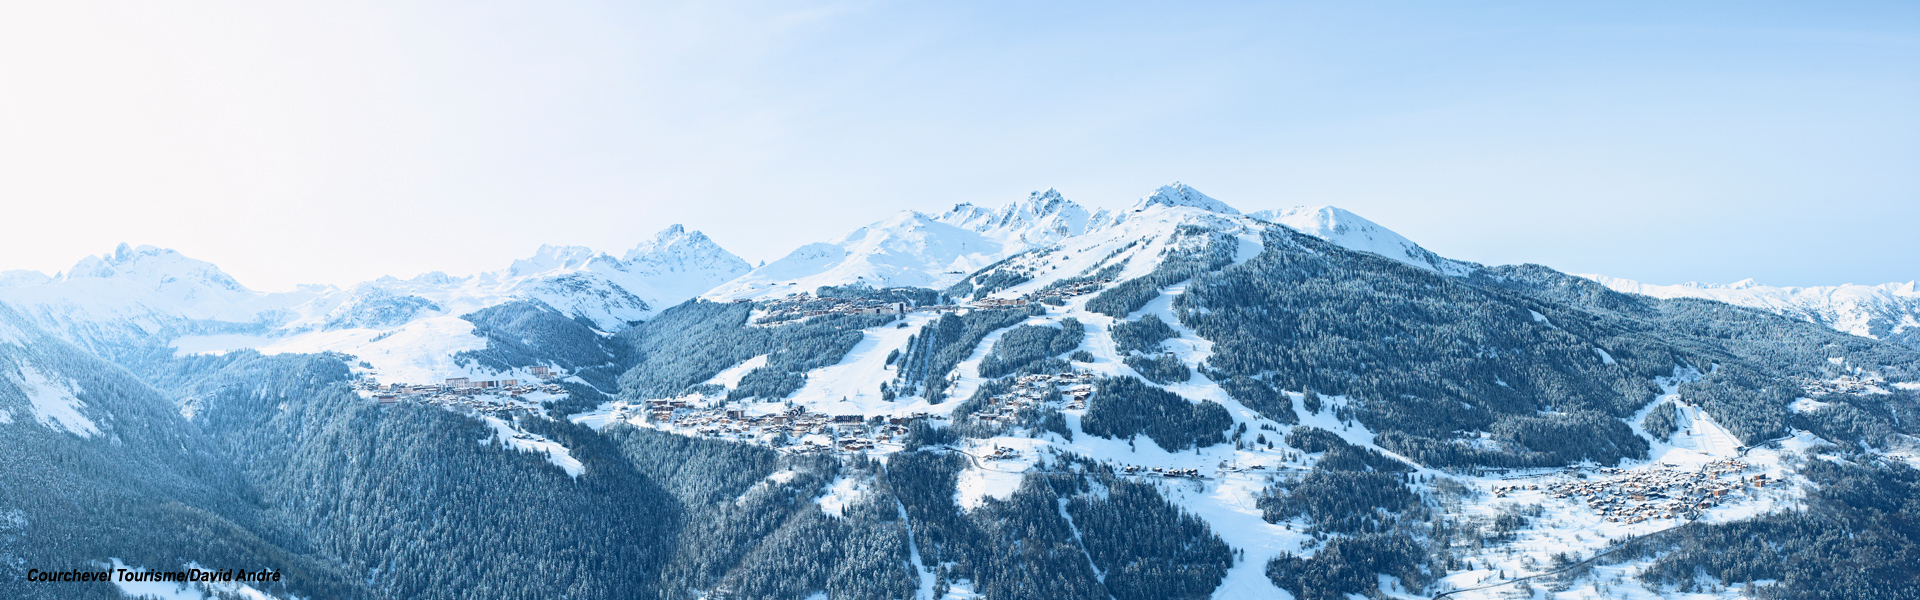 Courchevel Moriond